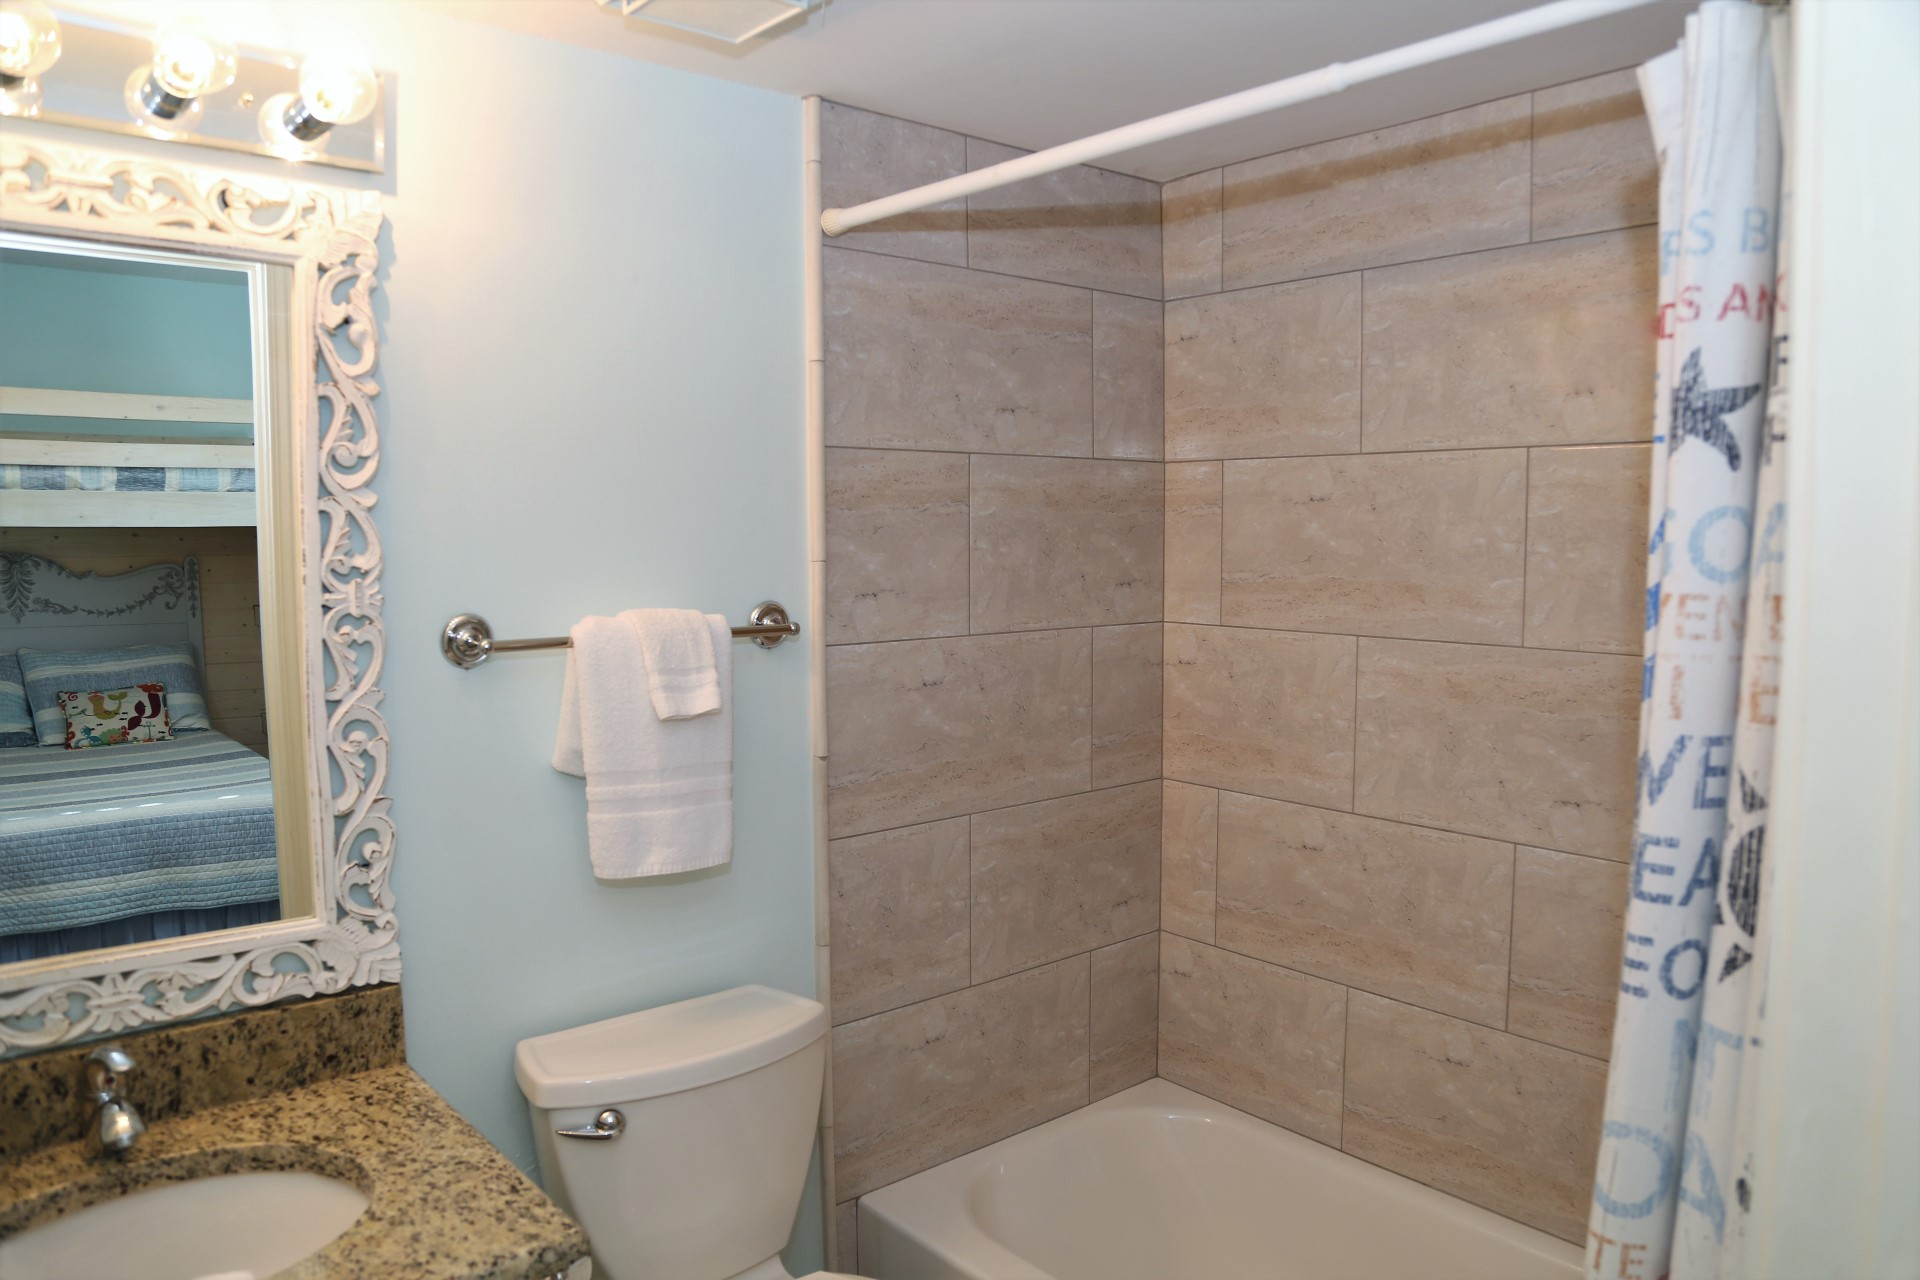 The third bathroom with tiled enclosure and start-up supply